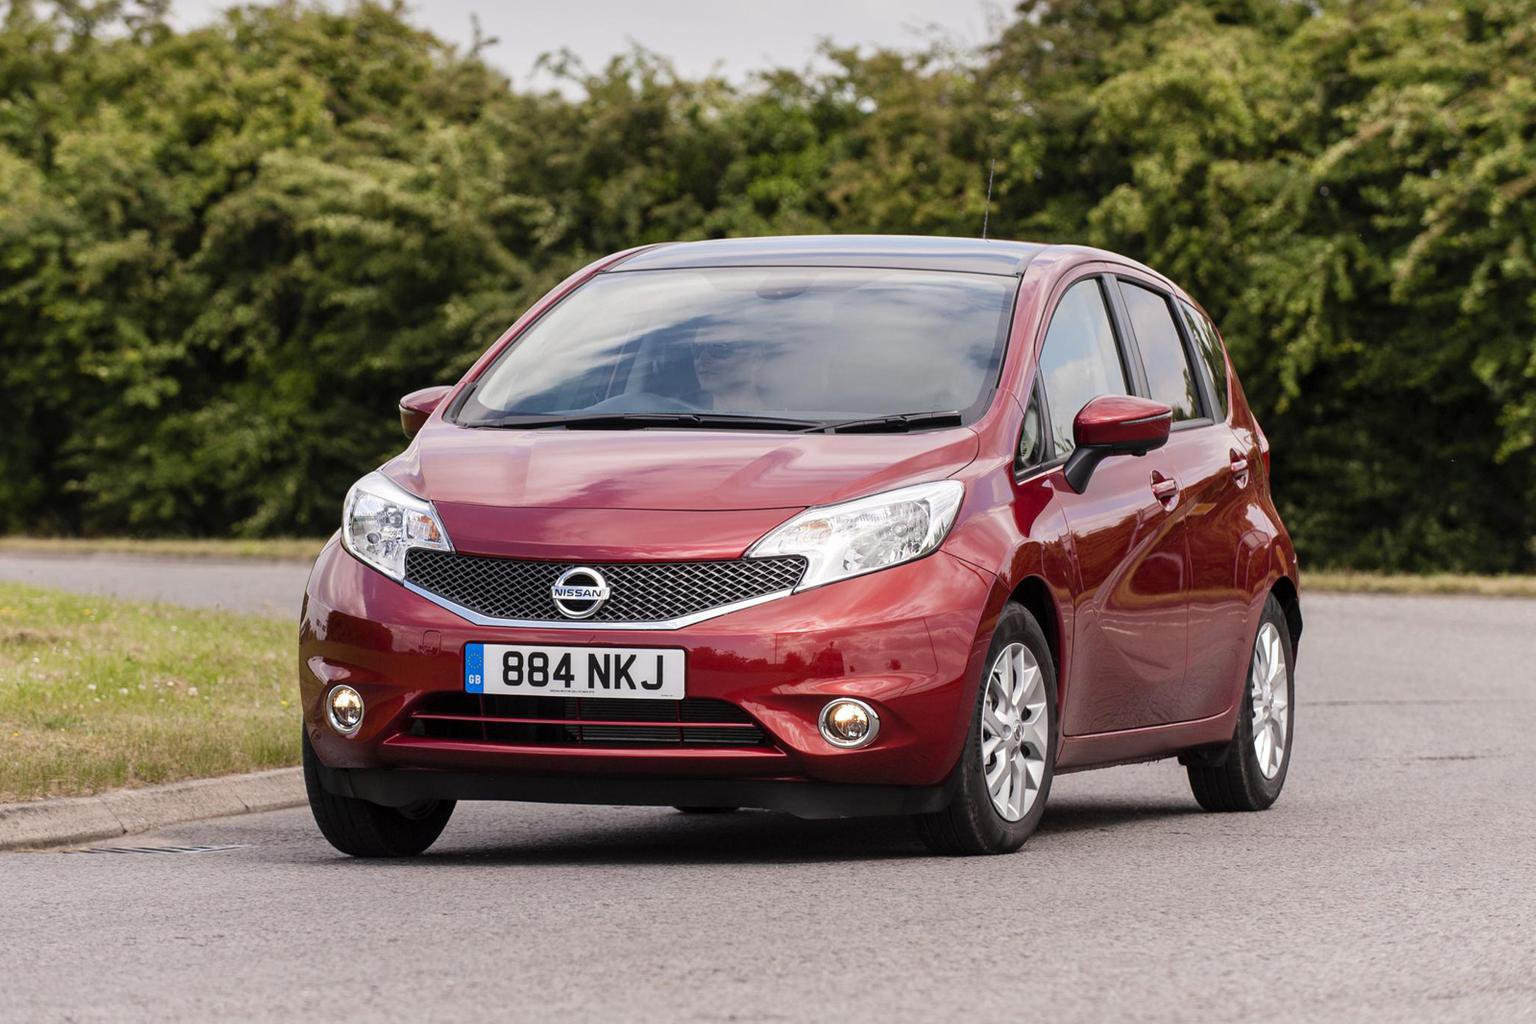 2014 Nissan Note 1.2 DIG-S review